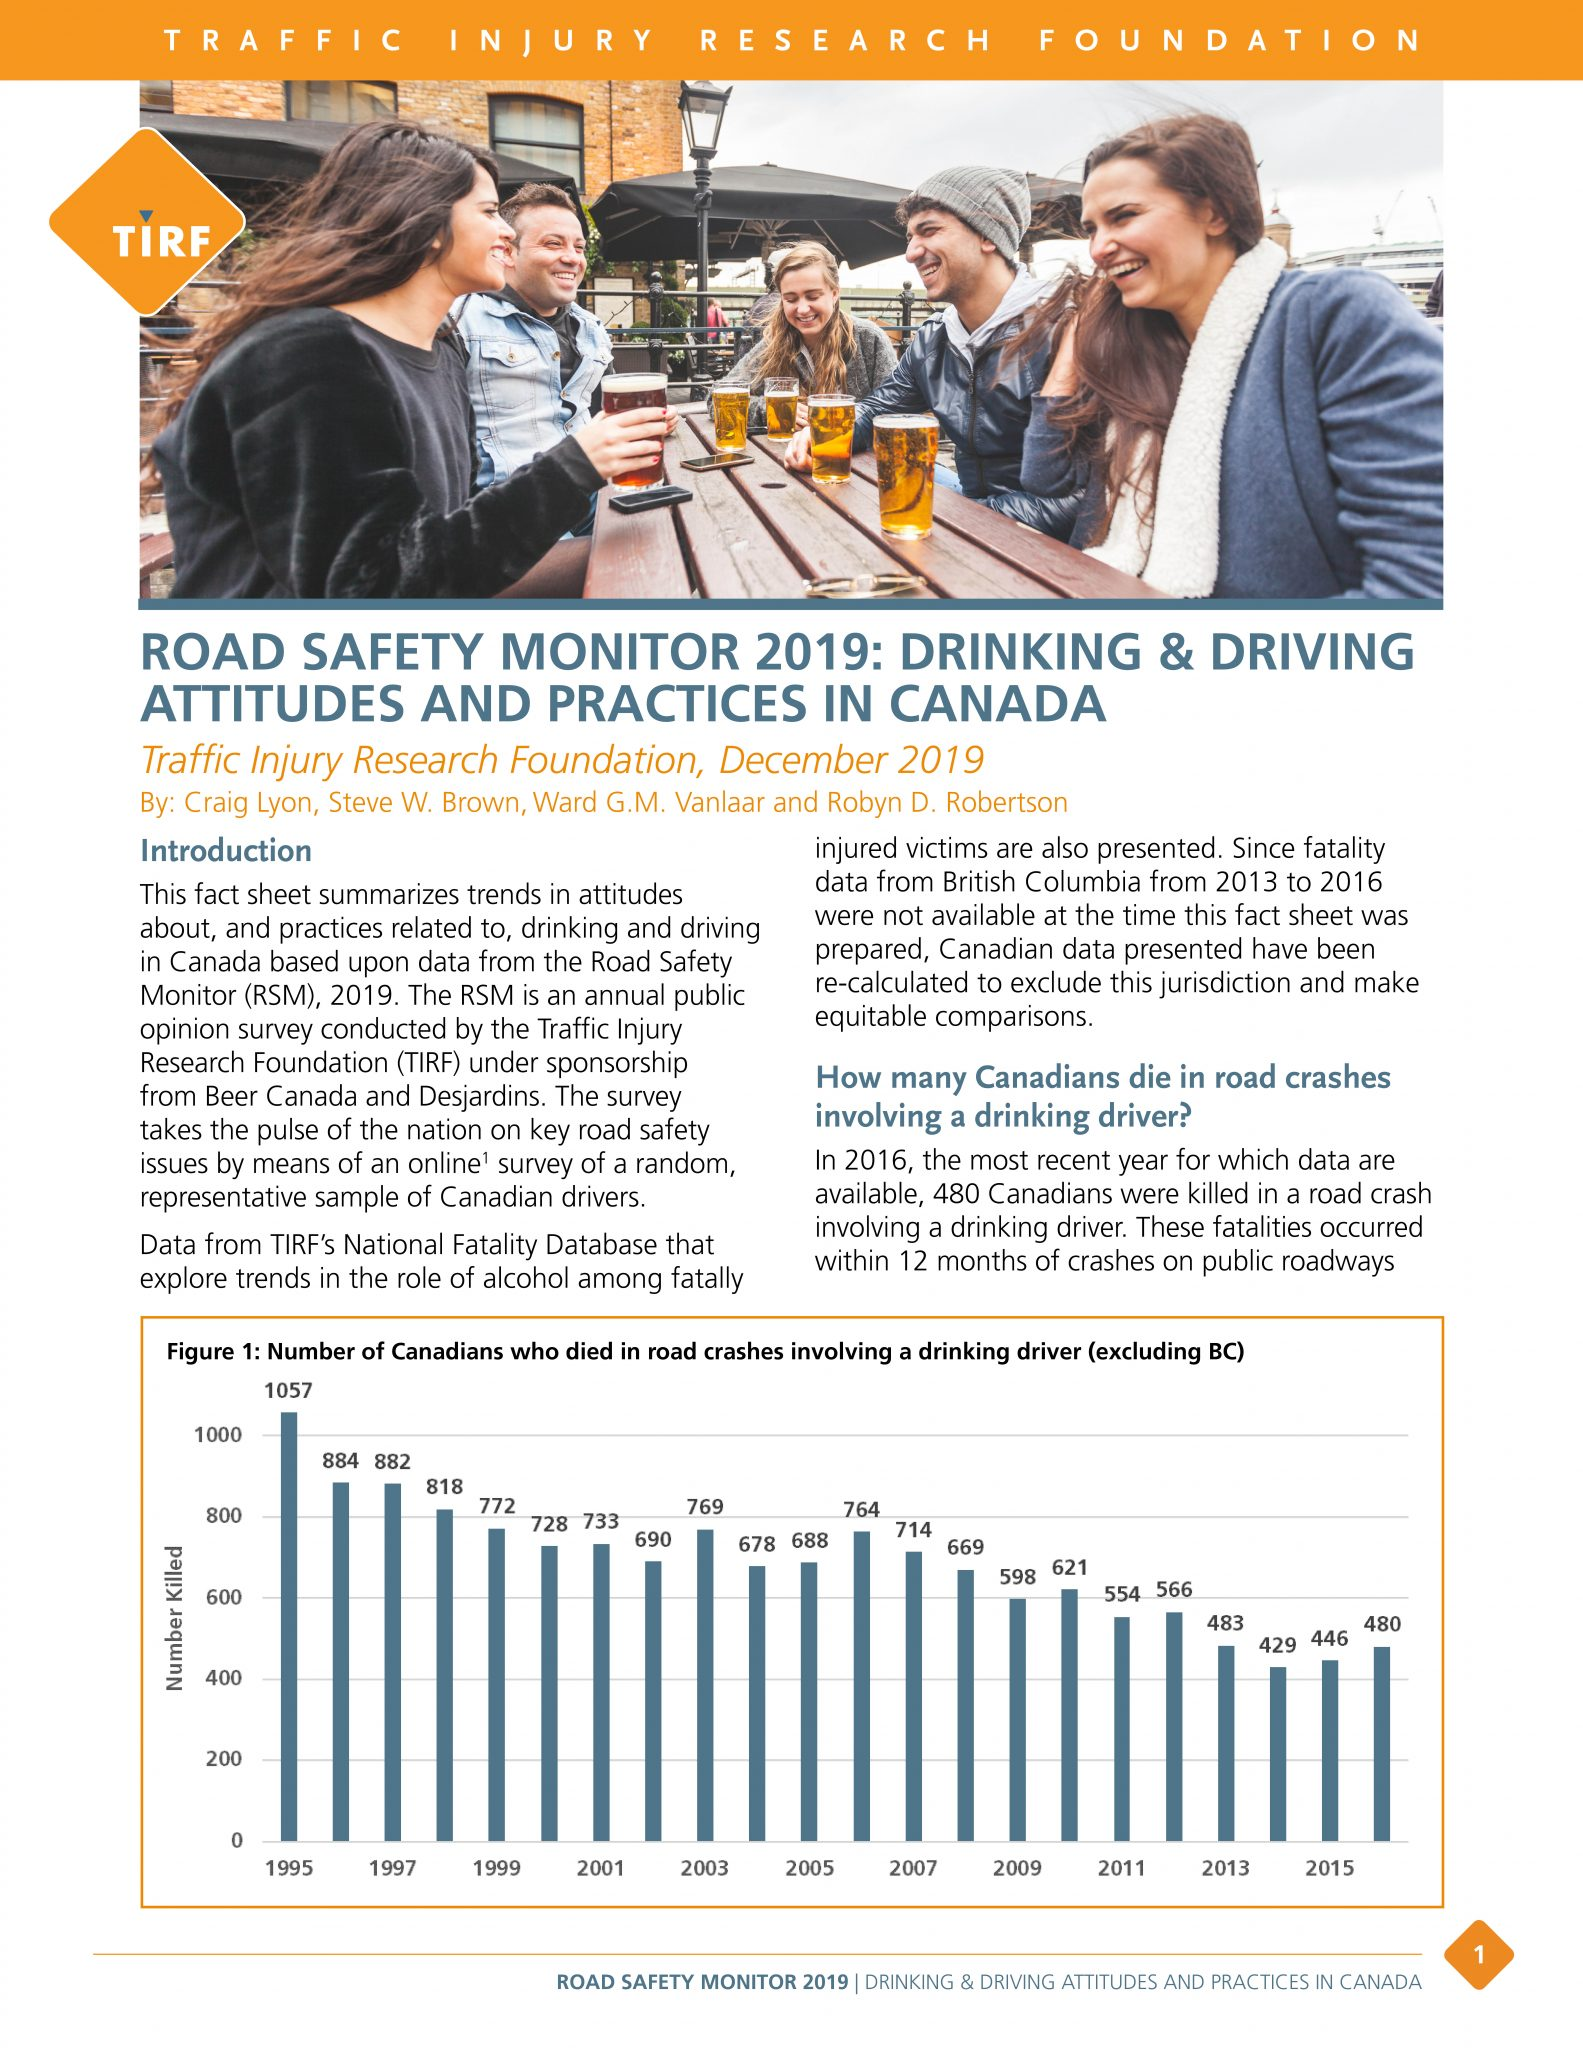 Road Safety Monitor 2019: Drinking & Driving Attitudes and Practices in Canada